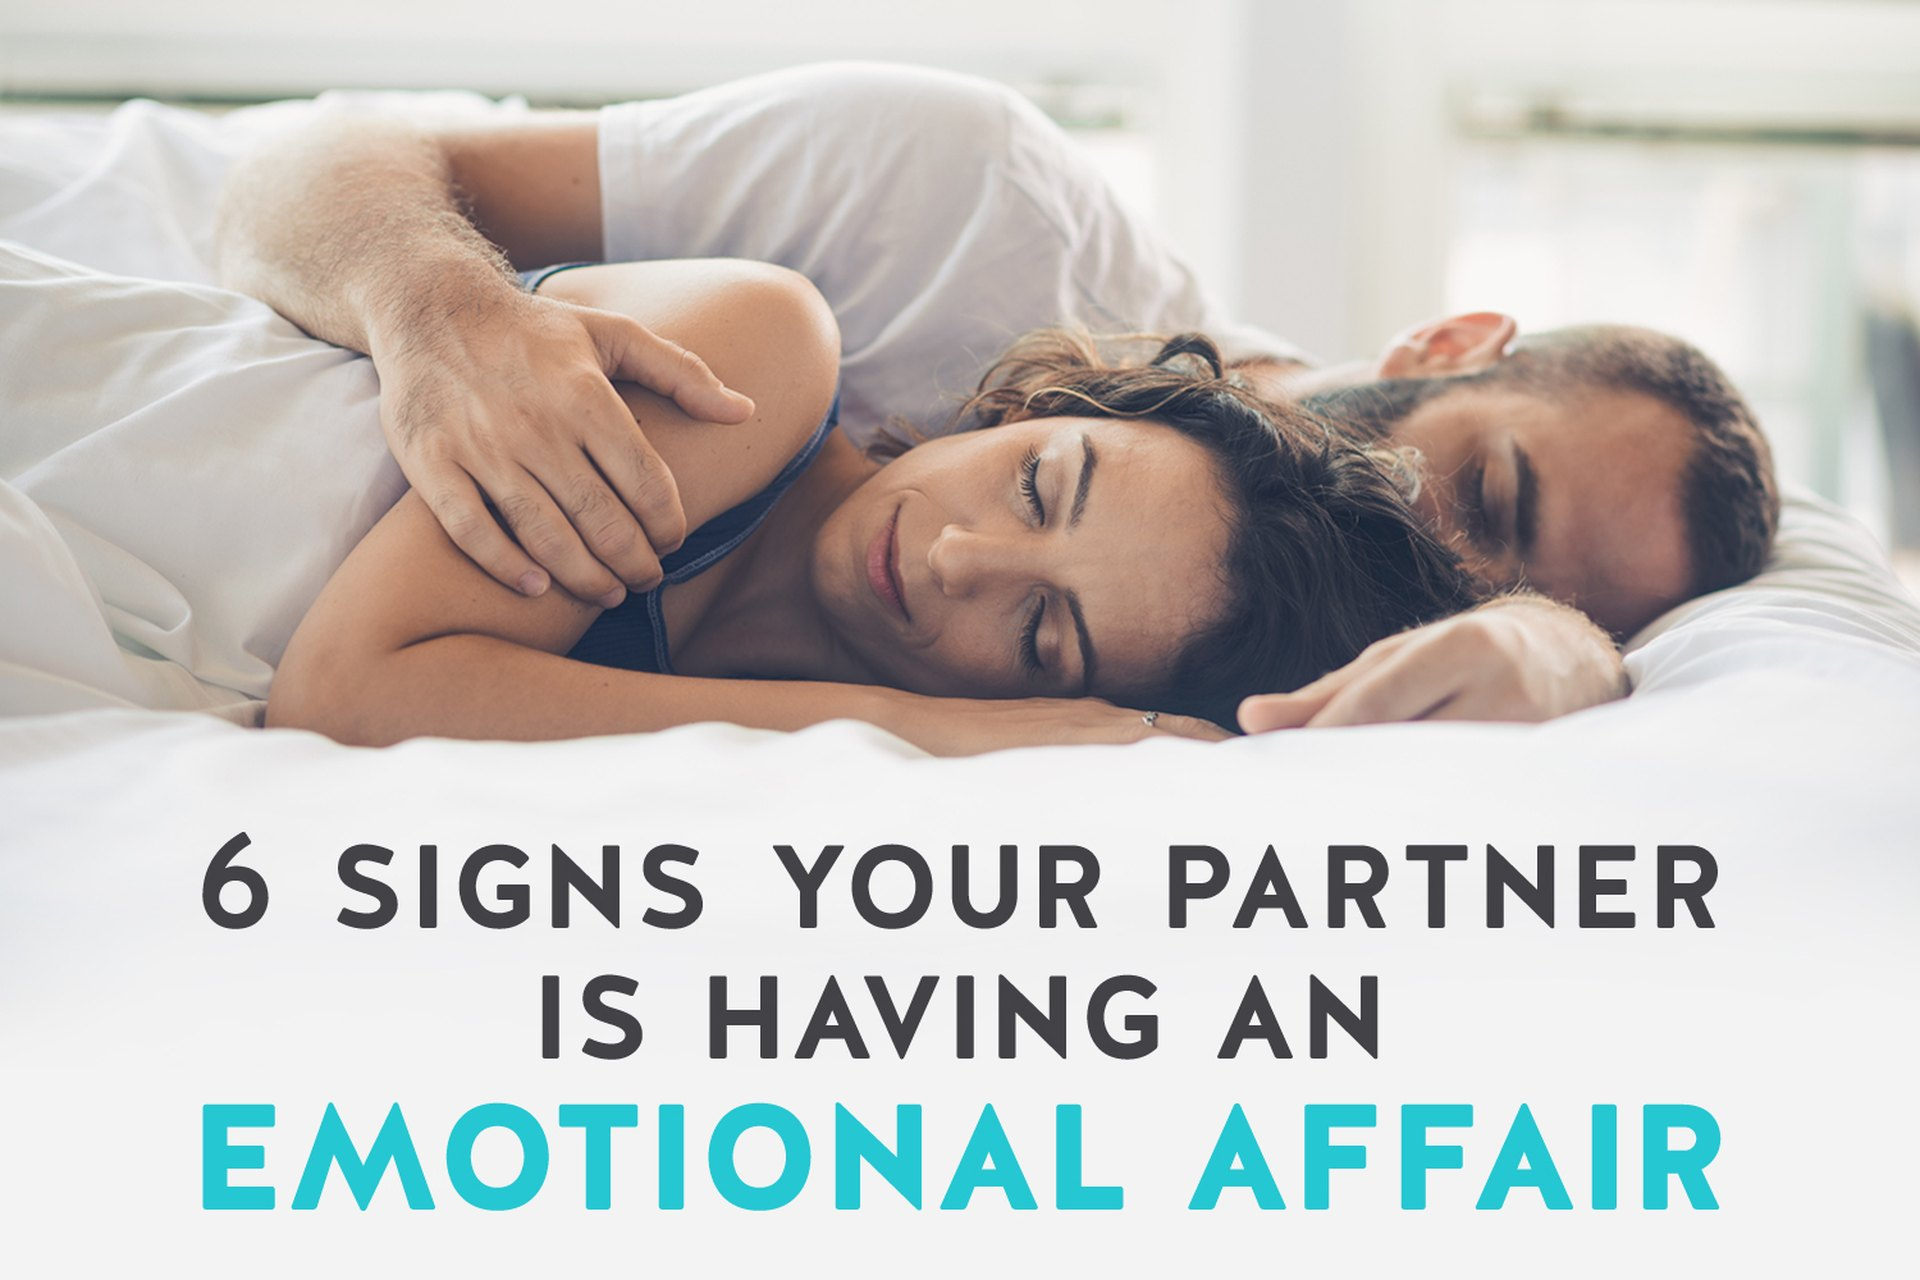 Emotional affair becomes physical